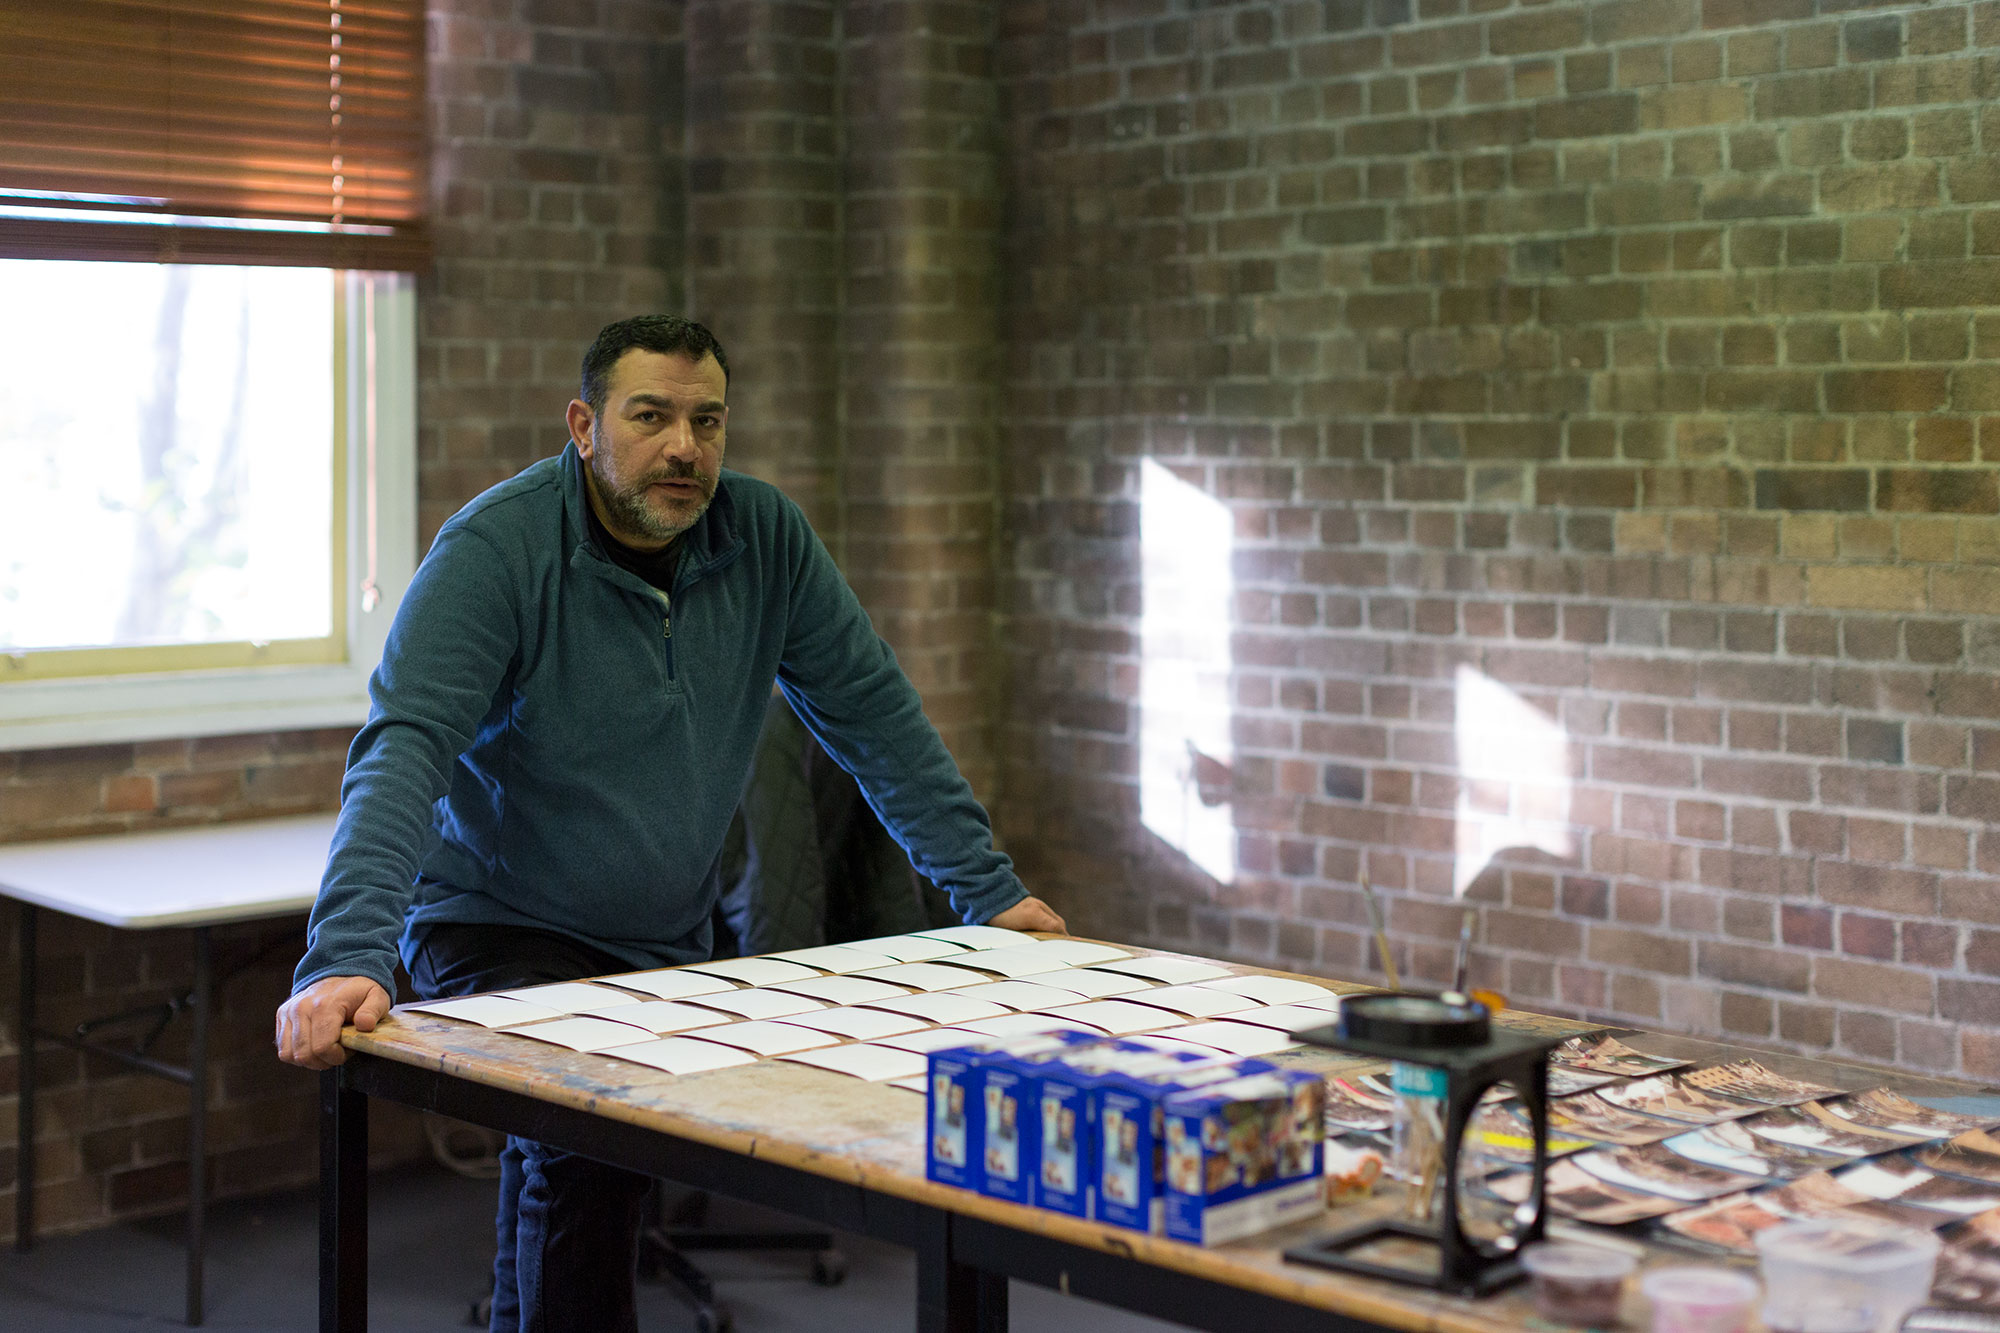 Khaled Sabsabi in his Artspace Studio, 2016. Photo: Jessica Maurer